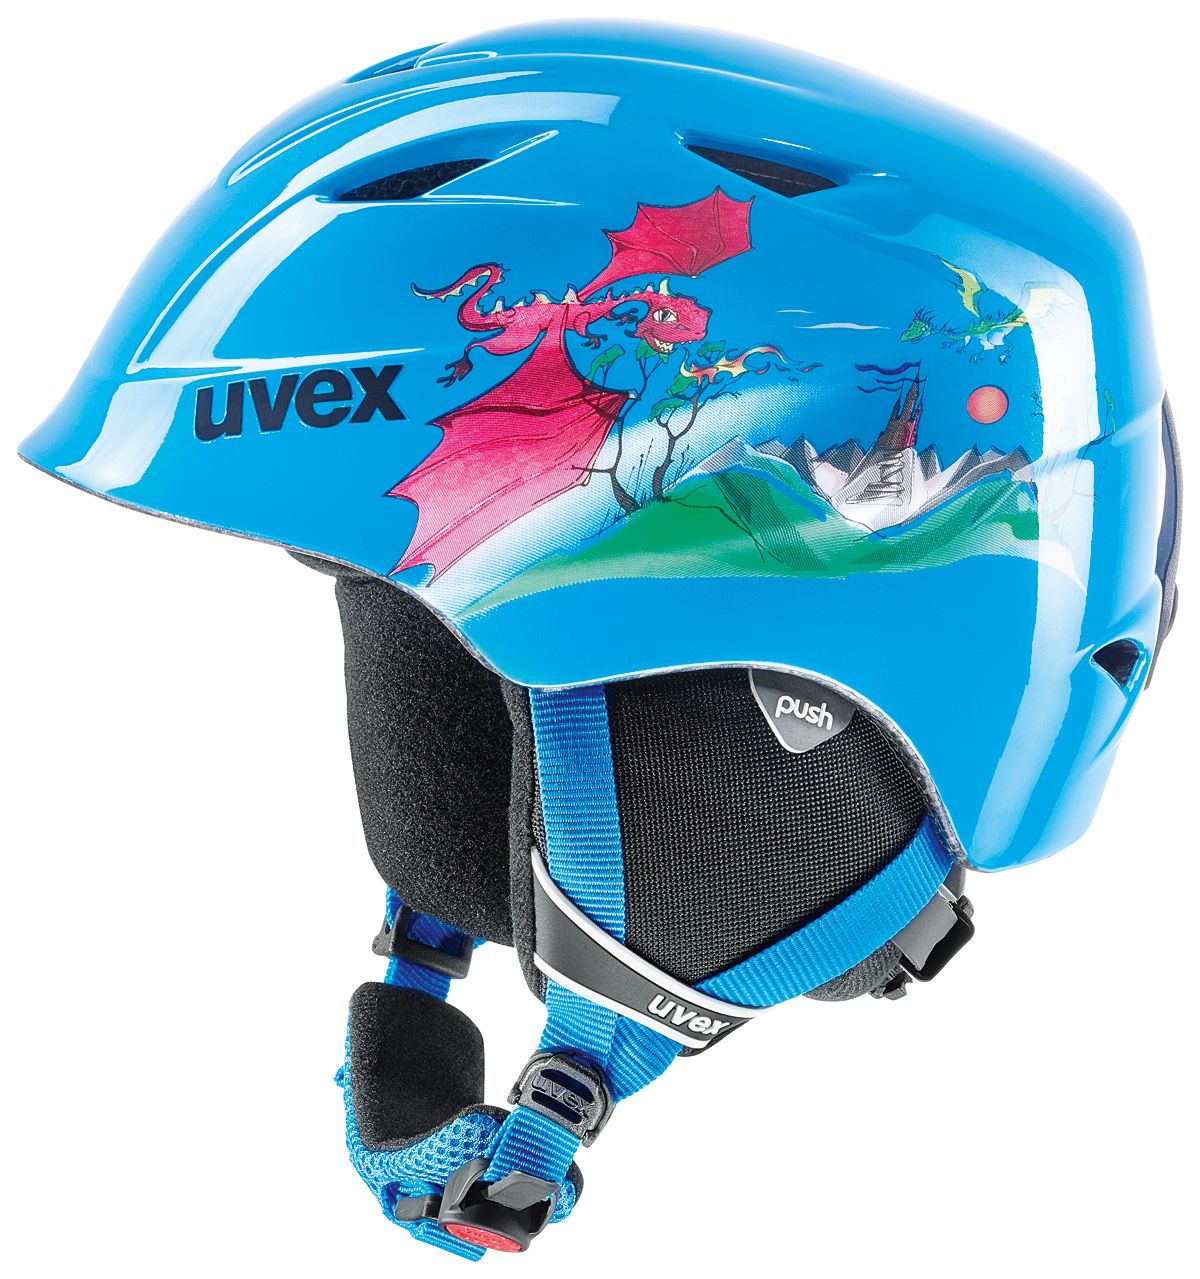 UVEX AIRWING 2 blue dragon S566132460 17/18 48-52 cm